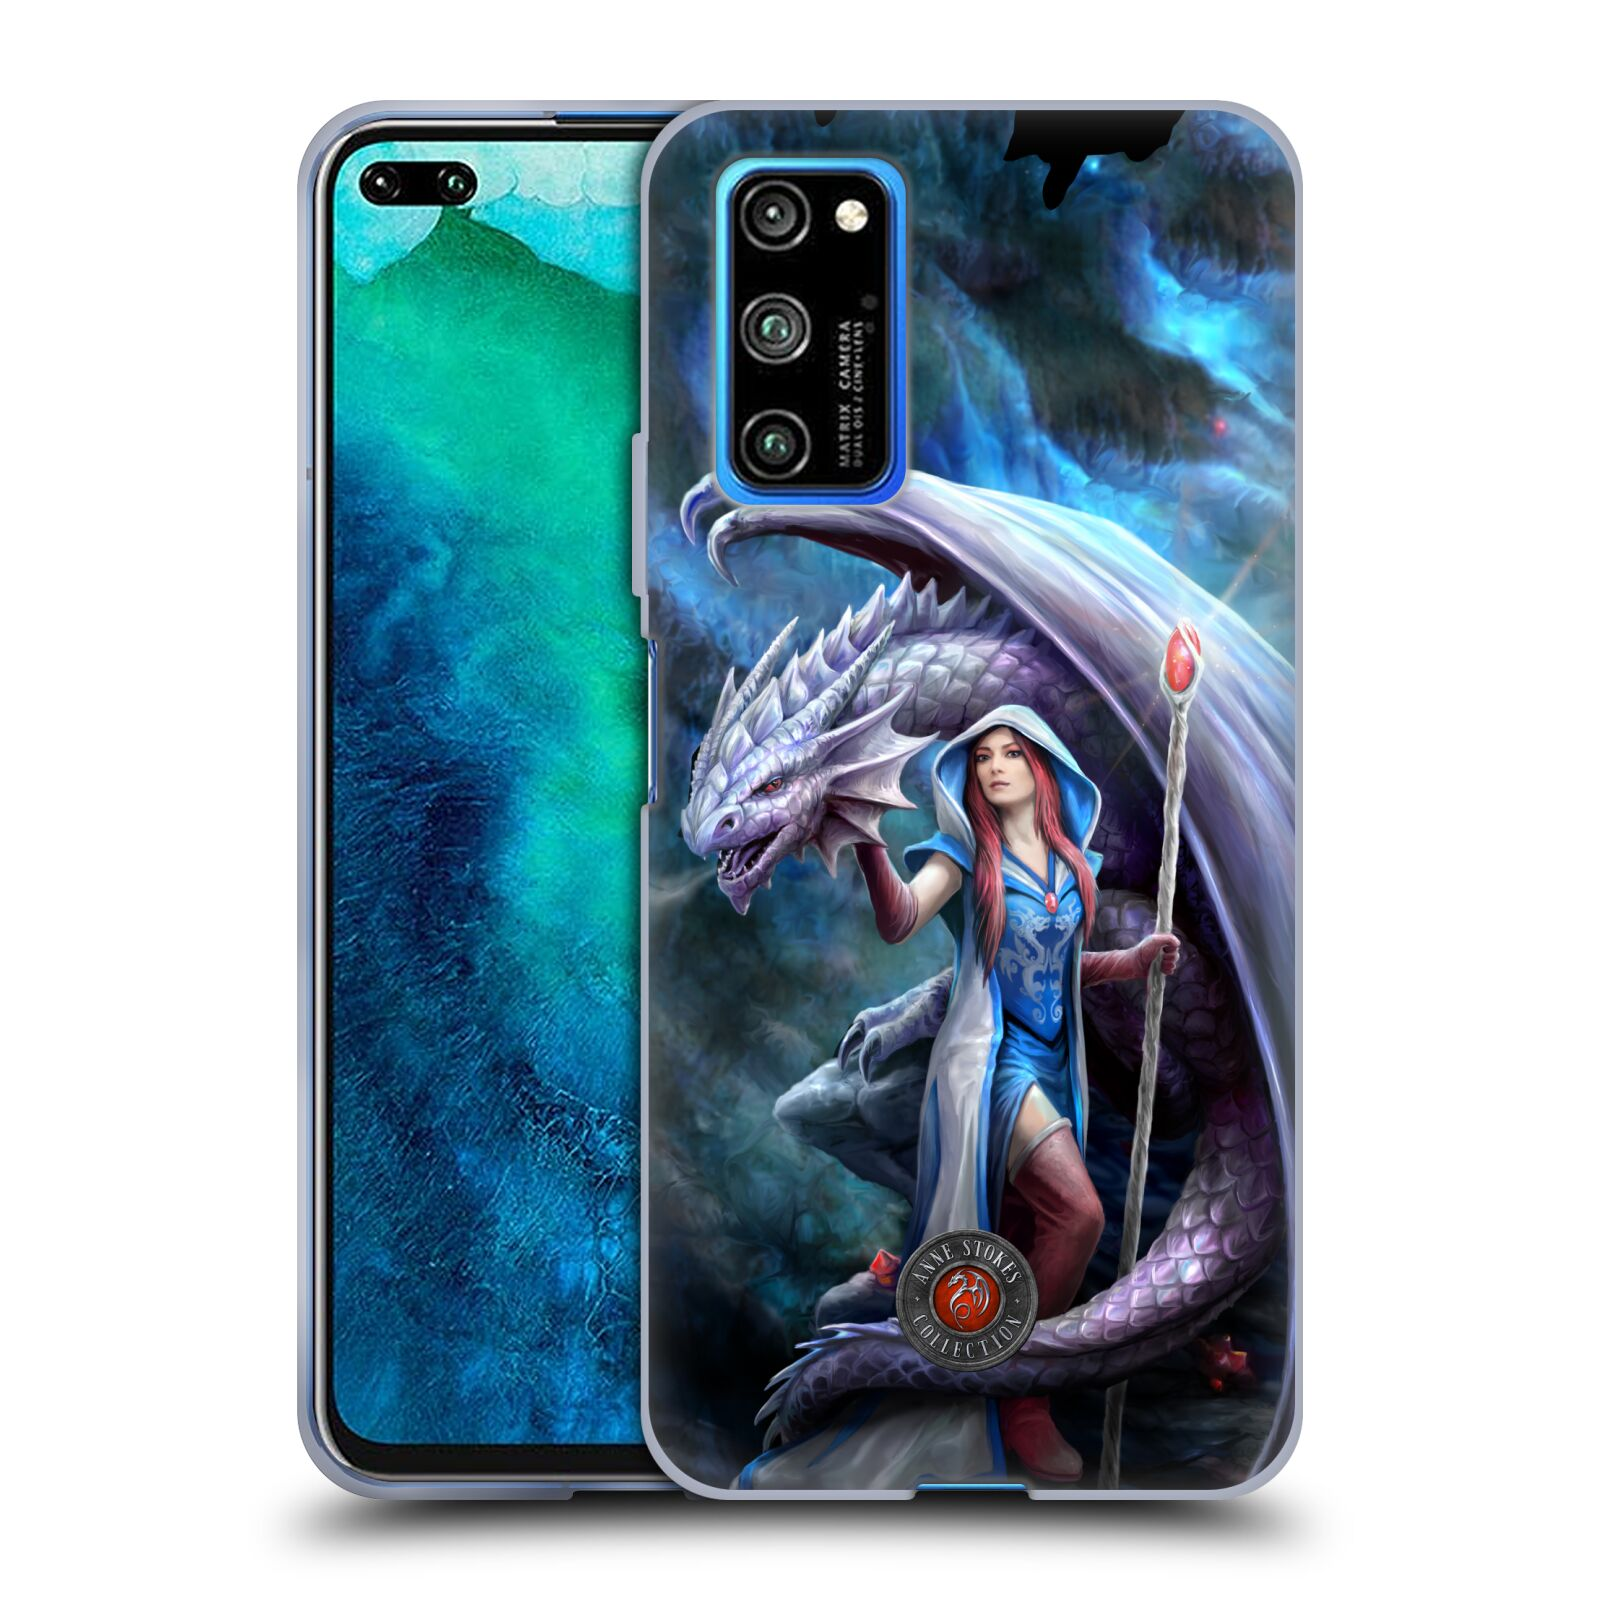 Official Anne Stokes Dragon Friendship 2 Mage Gel Case for Huawei Honor V30 Pro / View 30 Pro